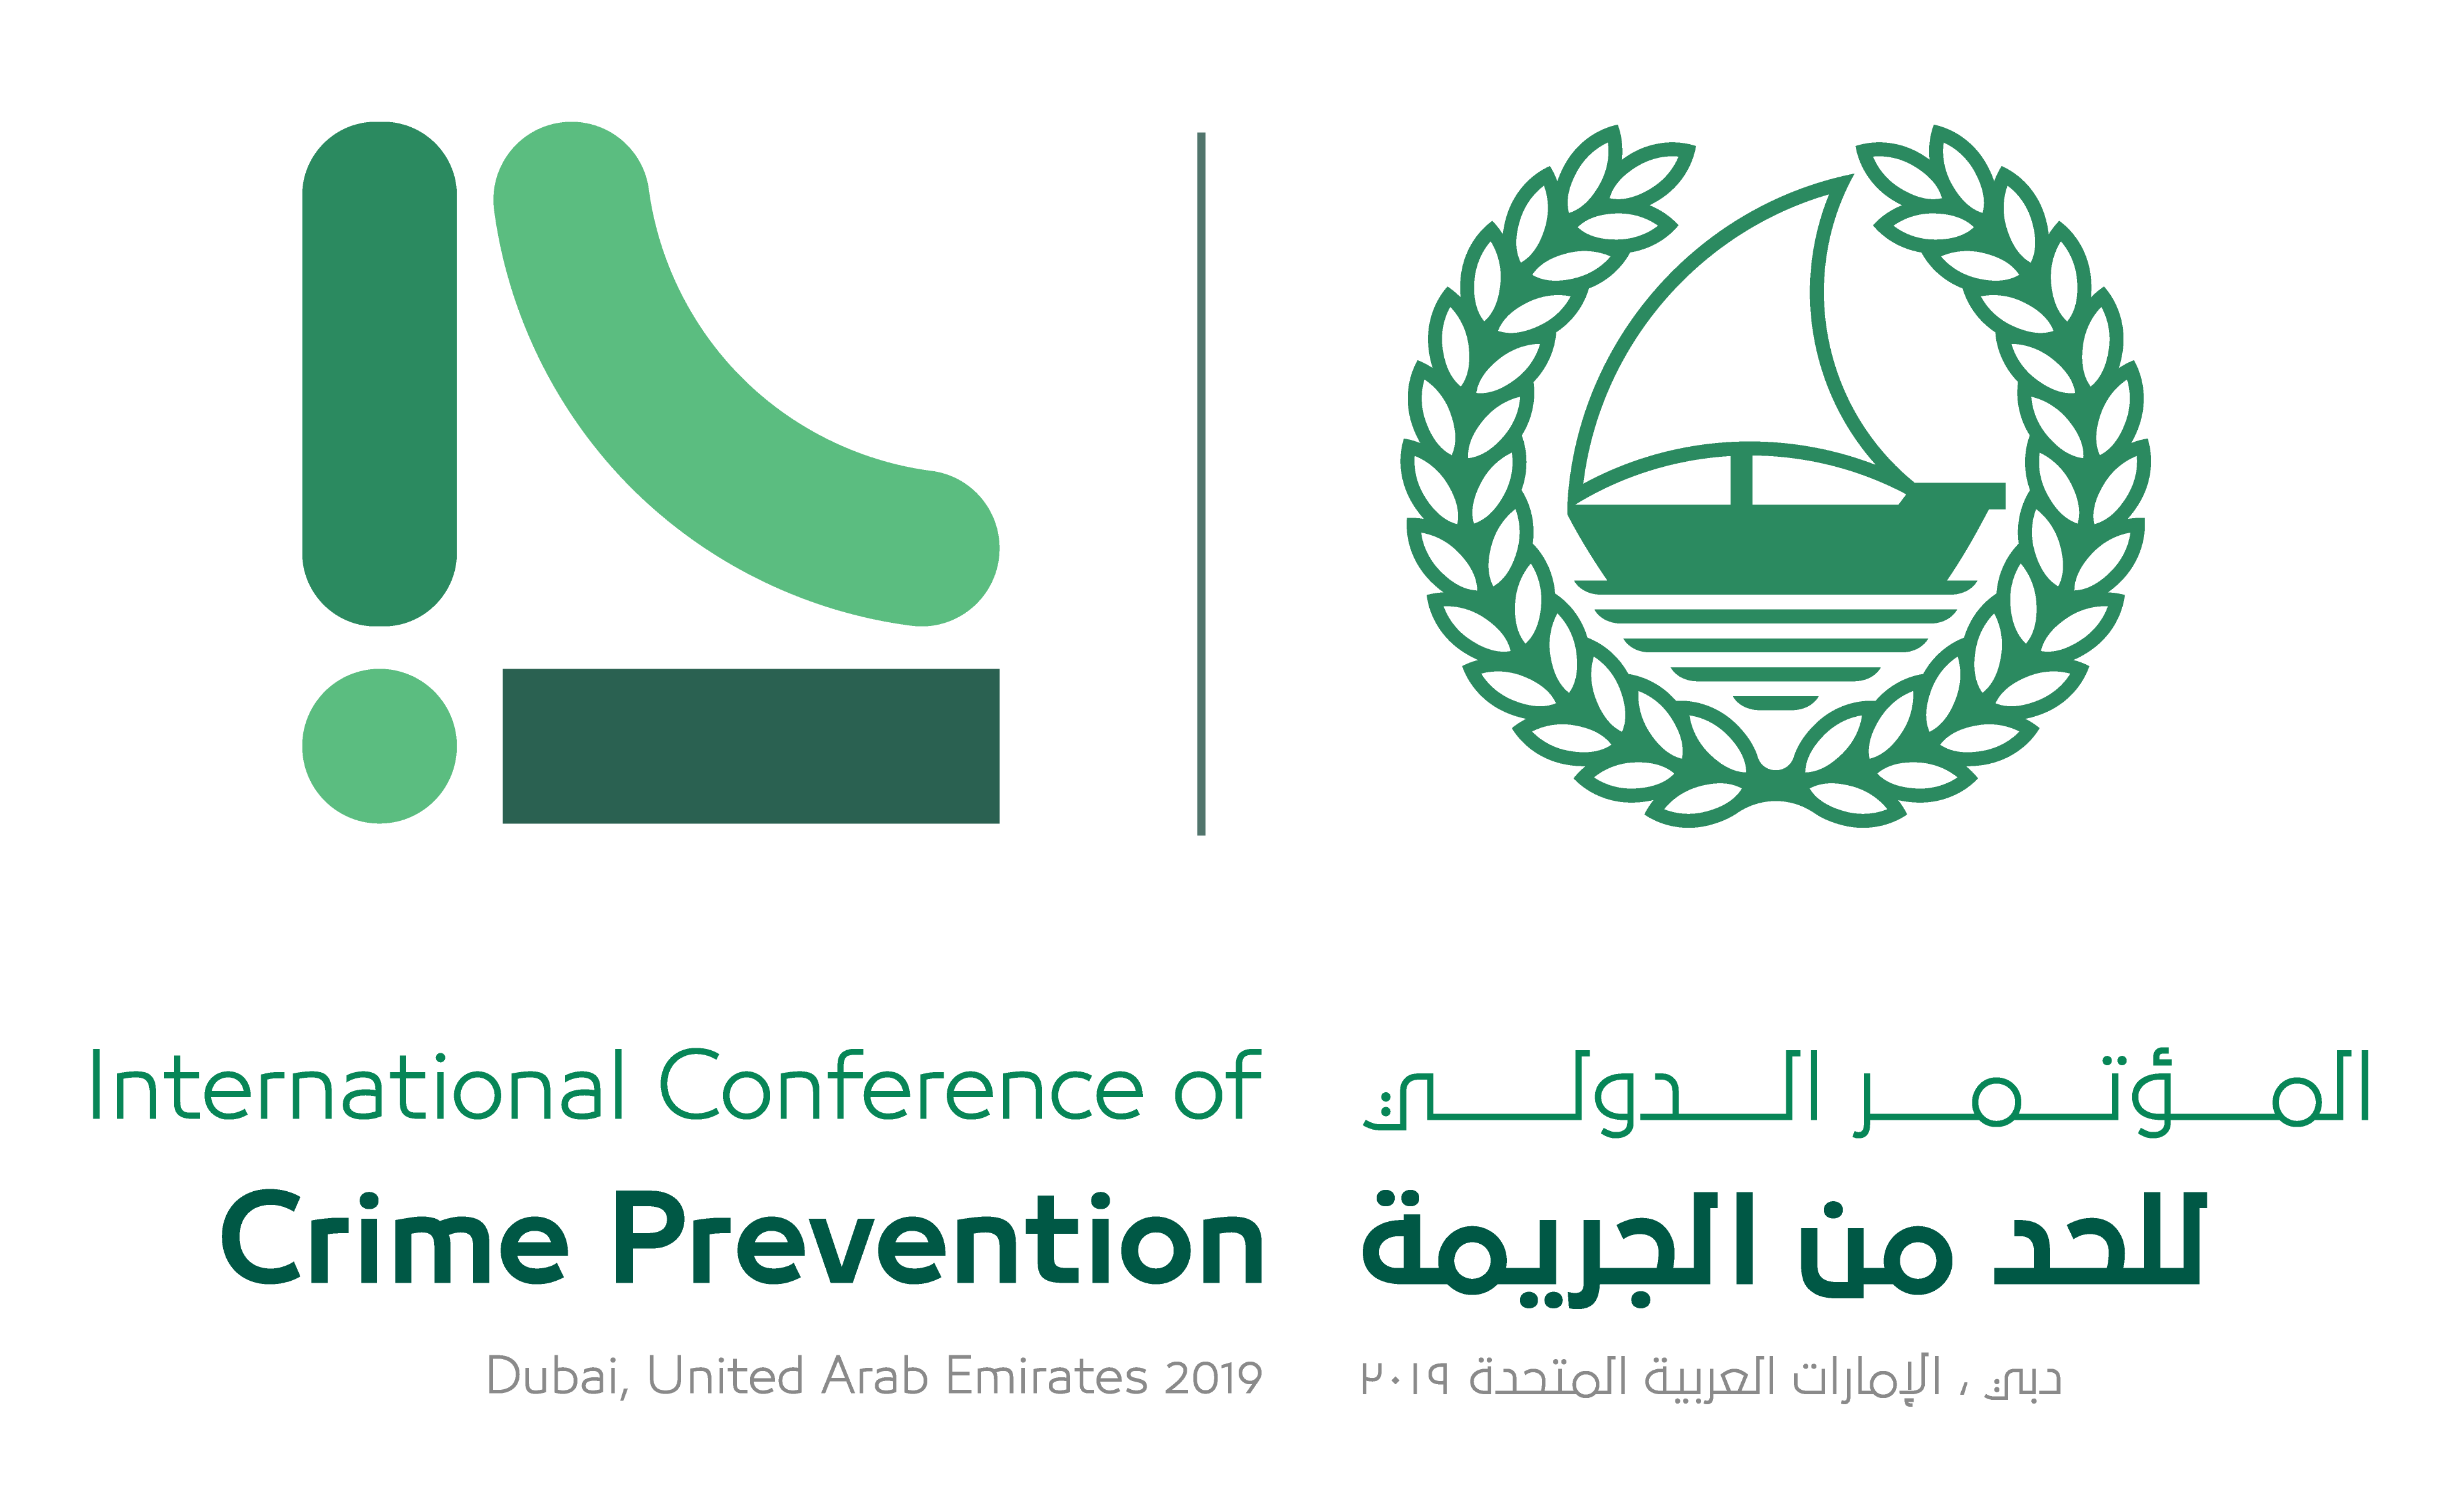 International Conference of Crime Prevention.